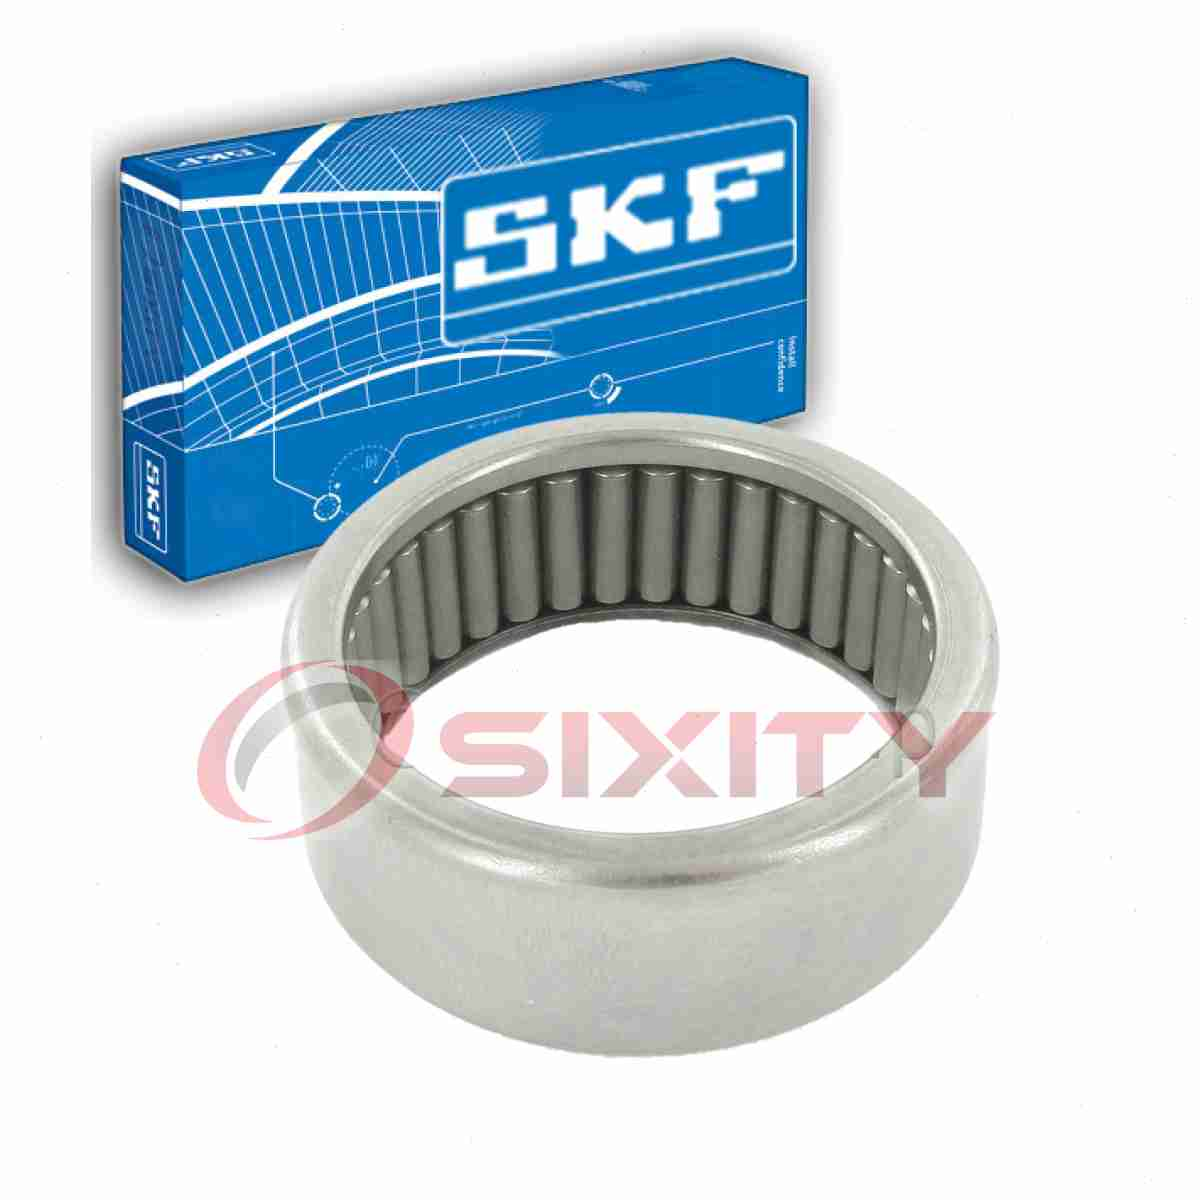 SKF Front Axle Spindle Bearing for 1977-1986 Jeep CJ7 Wheel Bearings ic